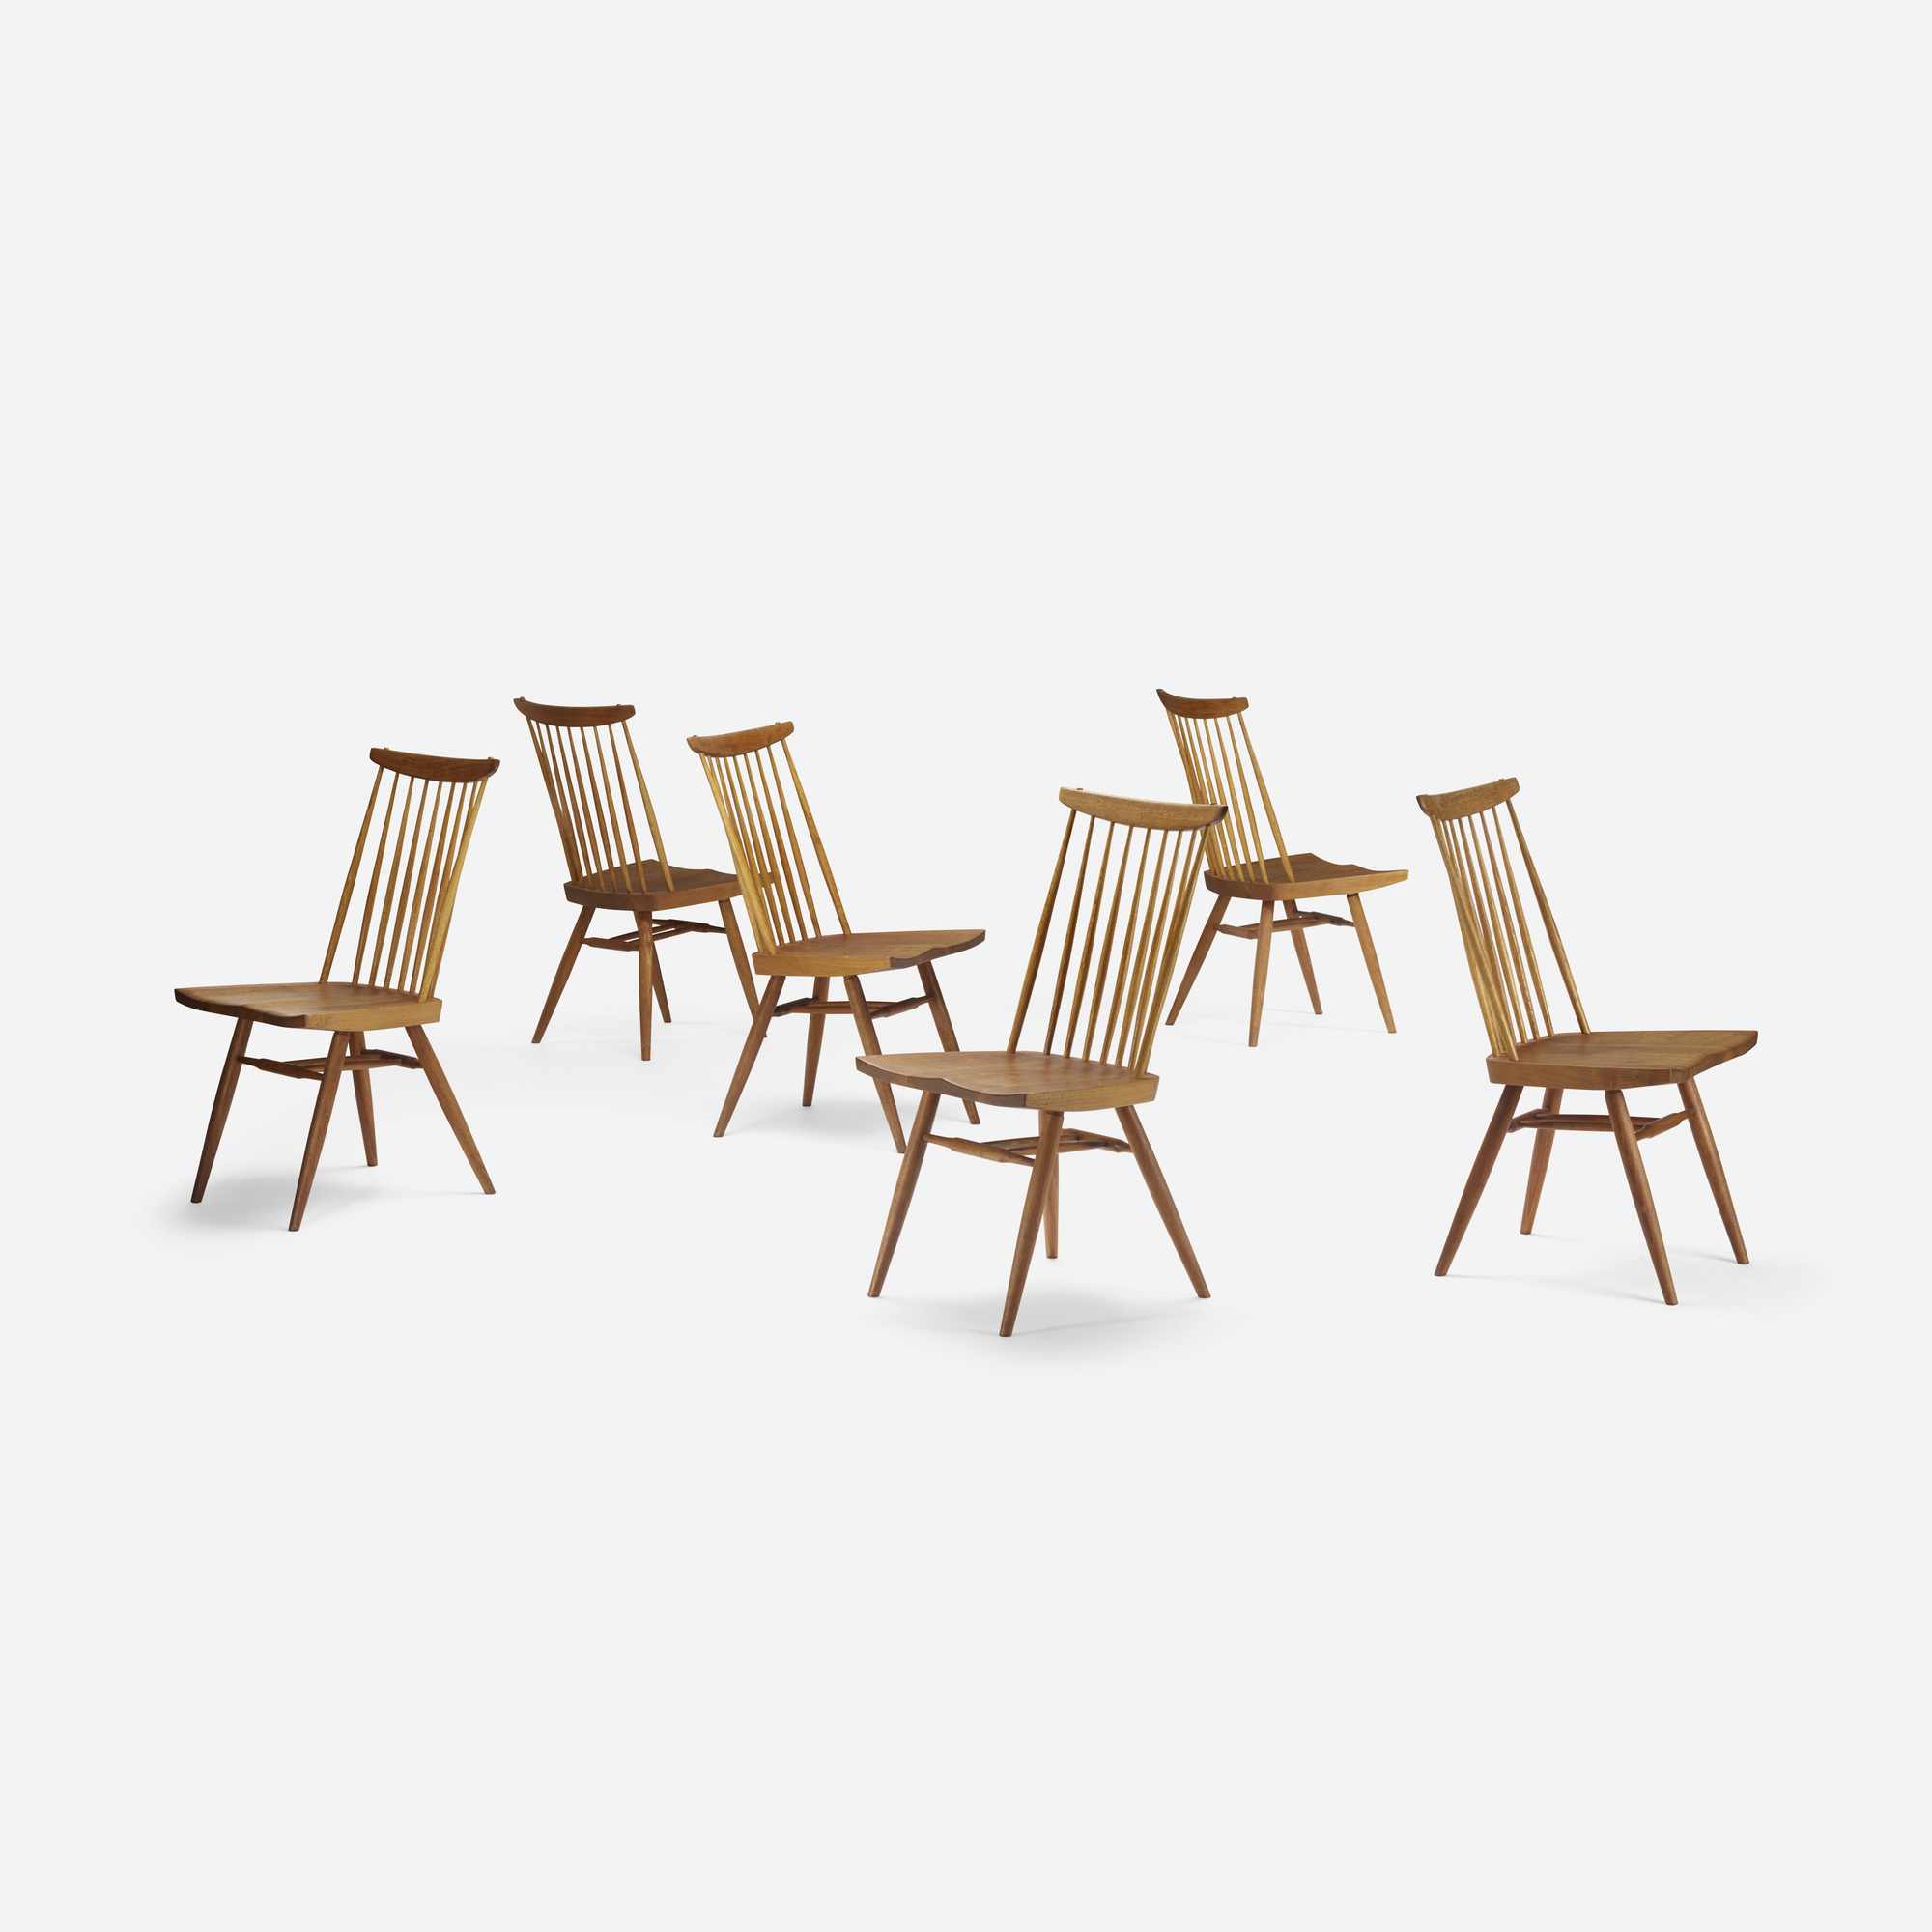 124: George Nakashima / New chairs, set of six (2 of 3)